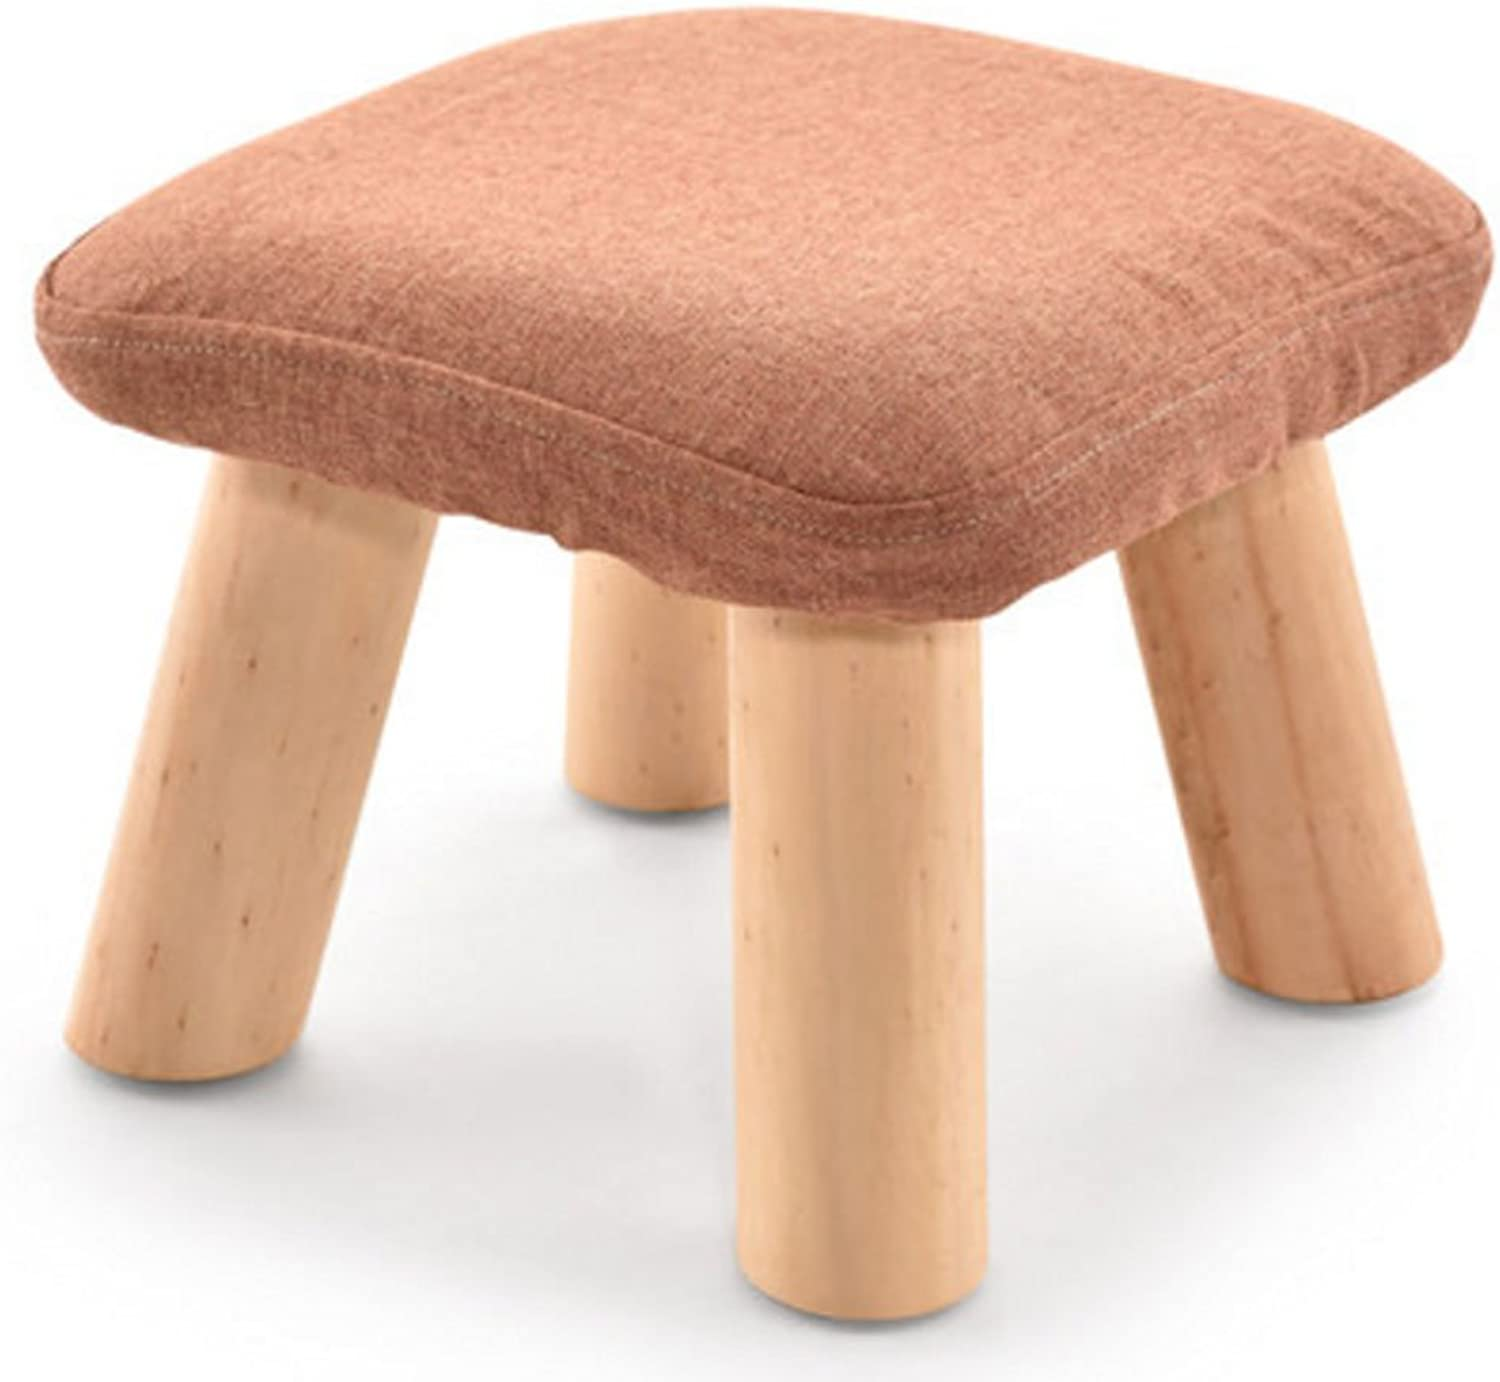 CQOZ Small Stool, Solid Wood Sofa Stool Cloth Small Bench Square Stool Mushroom Stool Low Stool Fashion Creative Wear shoes shoes shoes Sofa Stool (color    3)